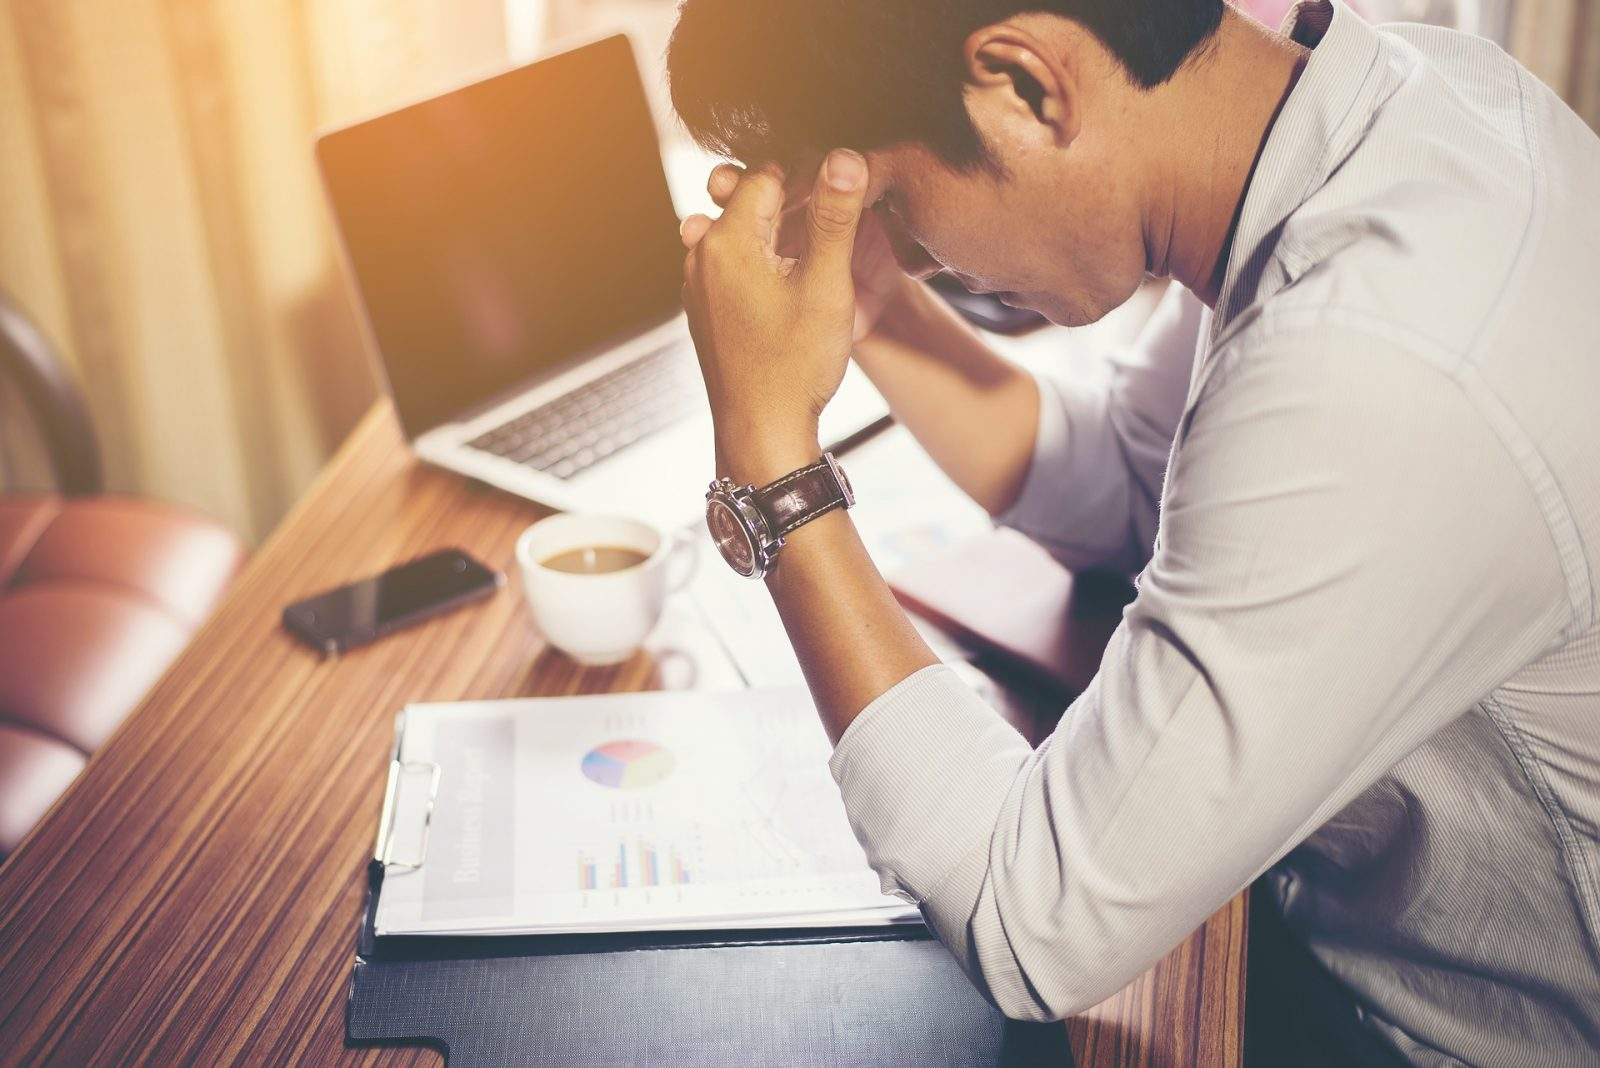 Bbe aware of ways to reduce office stress during a cash flow crisis, so your employees don't buckle under the pressure.